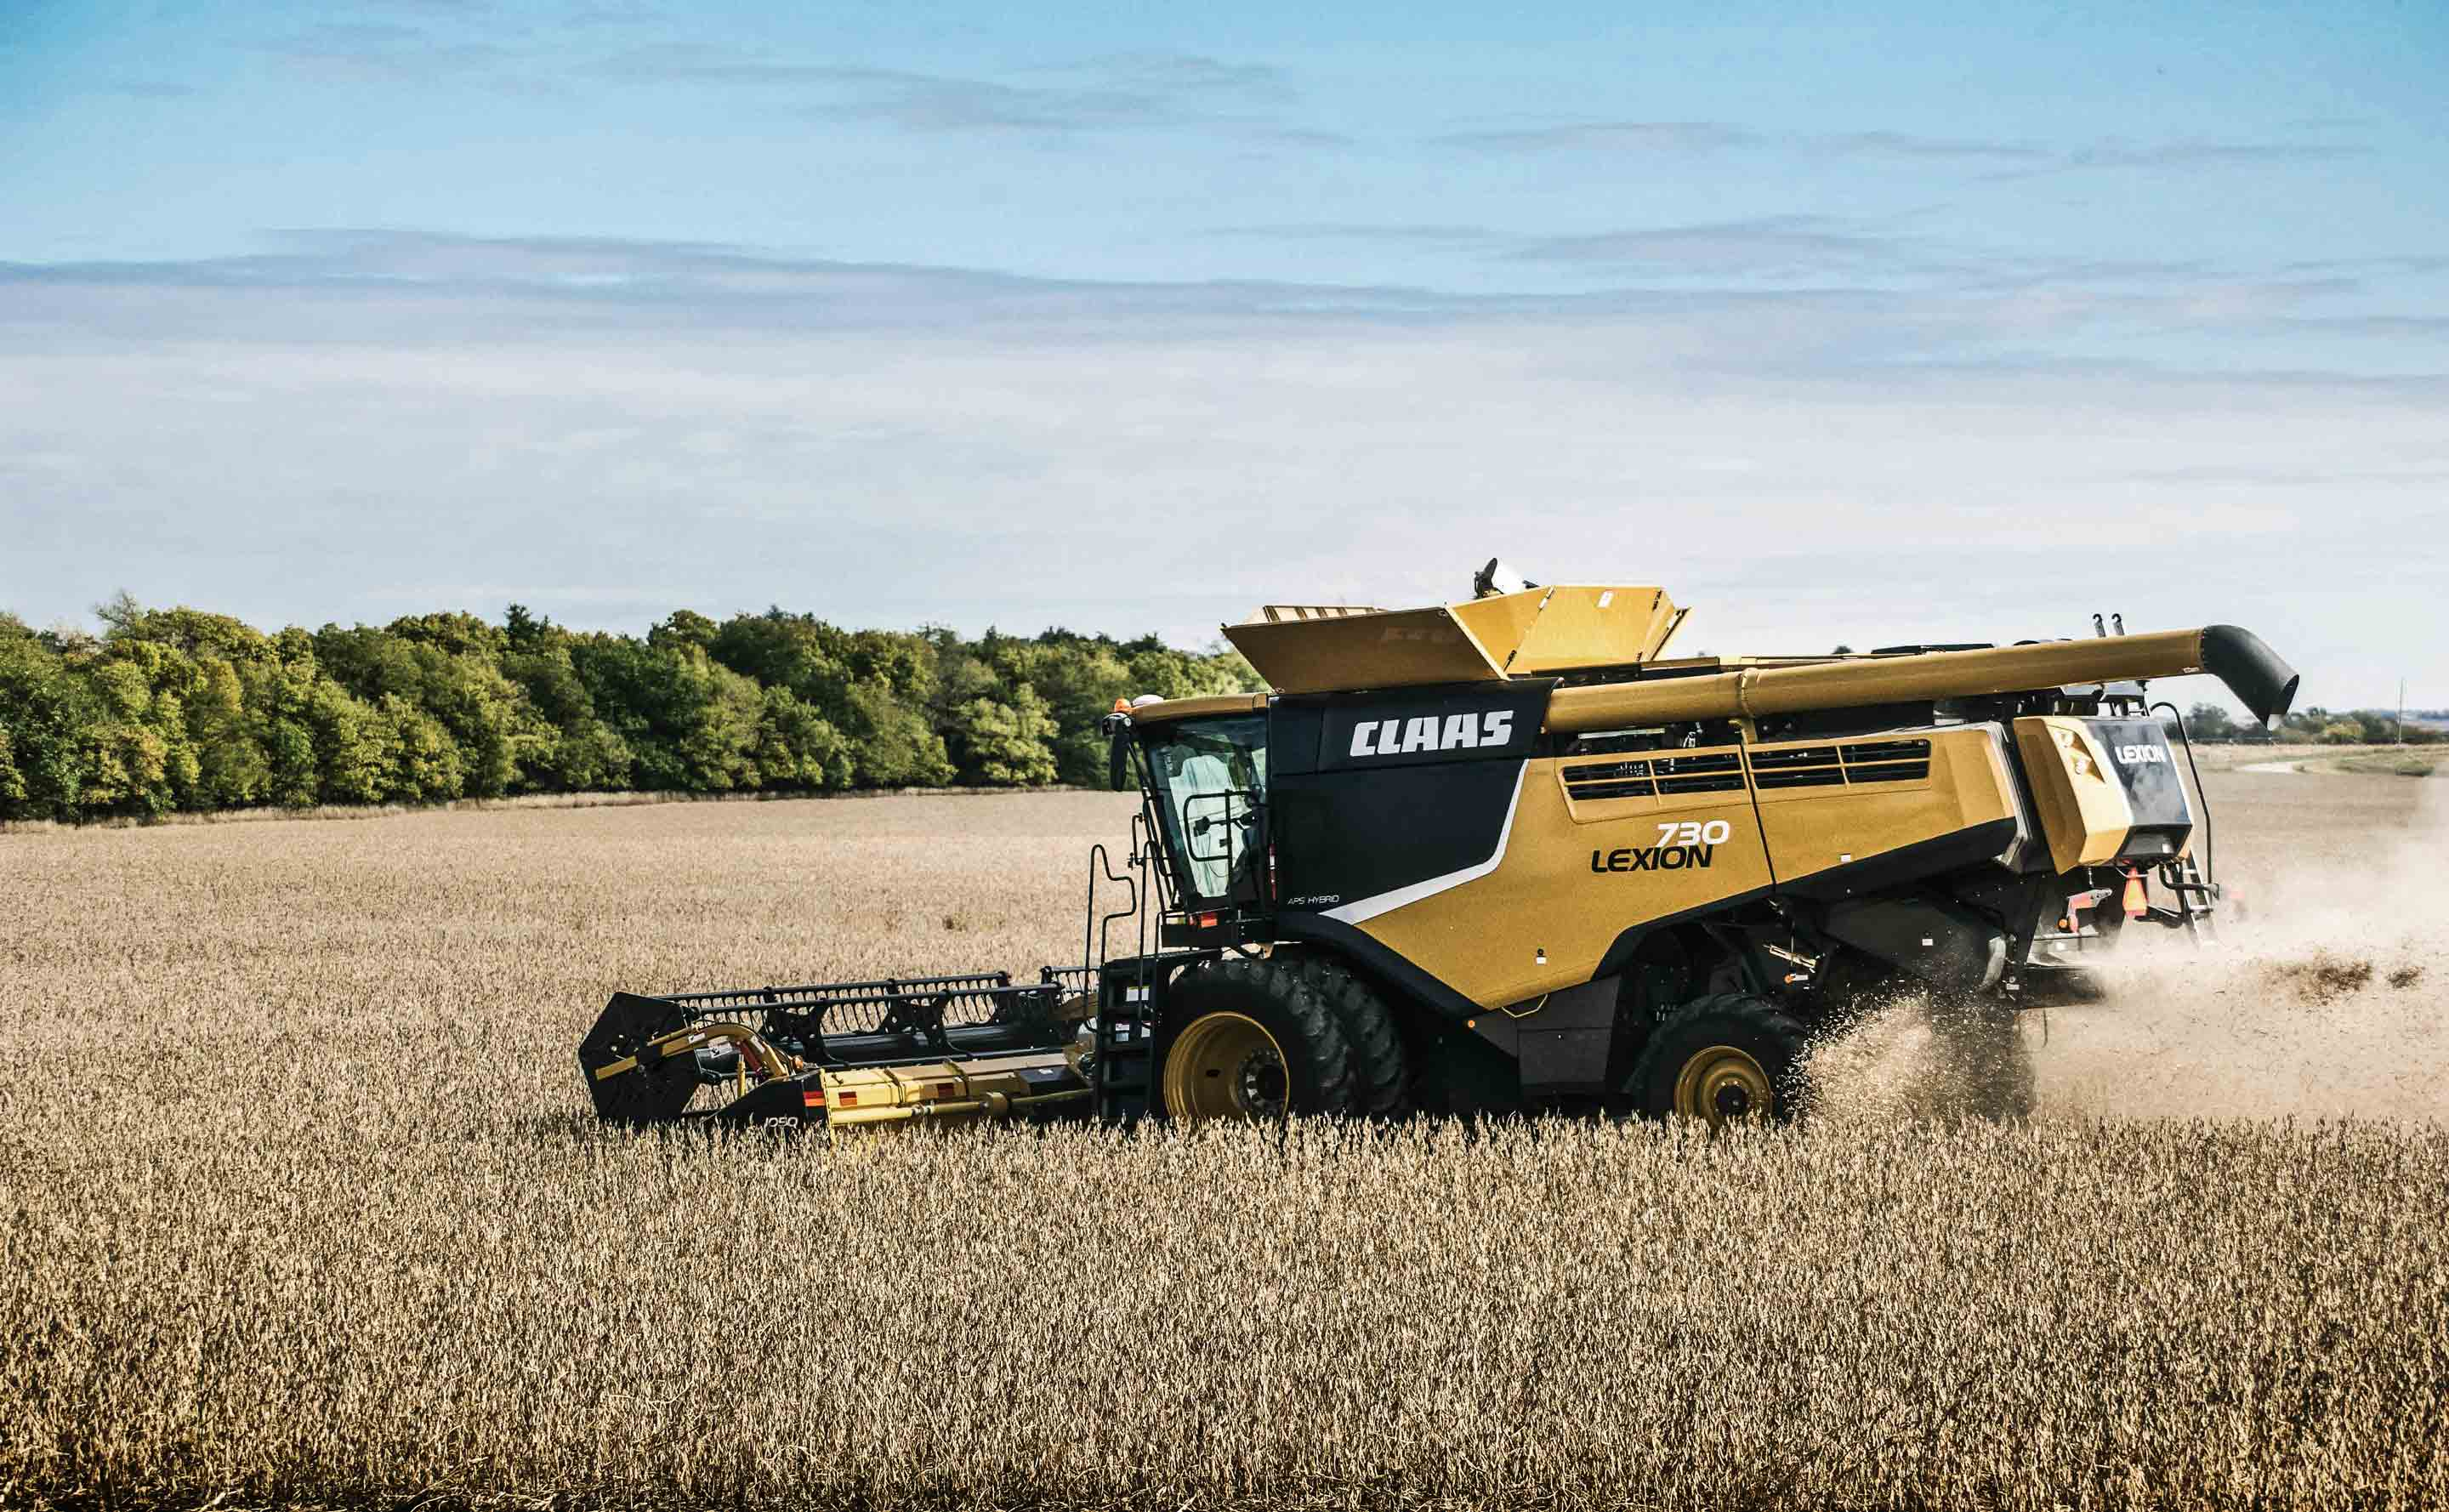 Claas Combine harvesting wheat